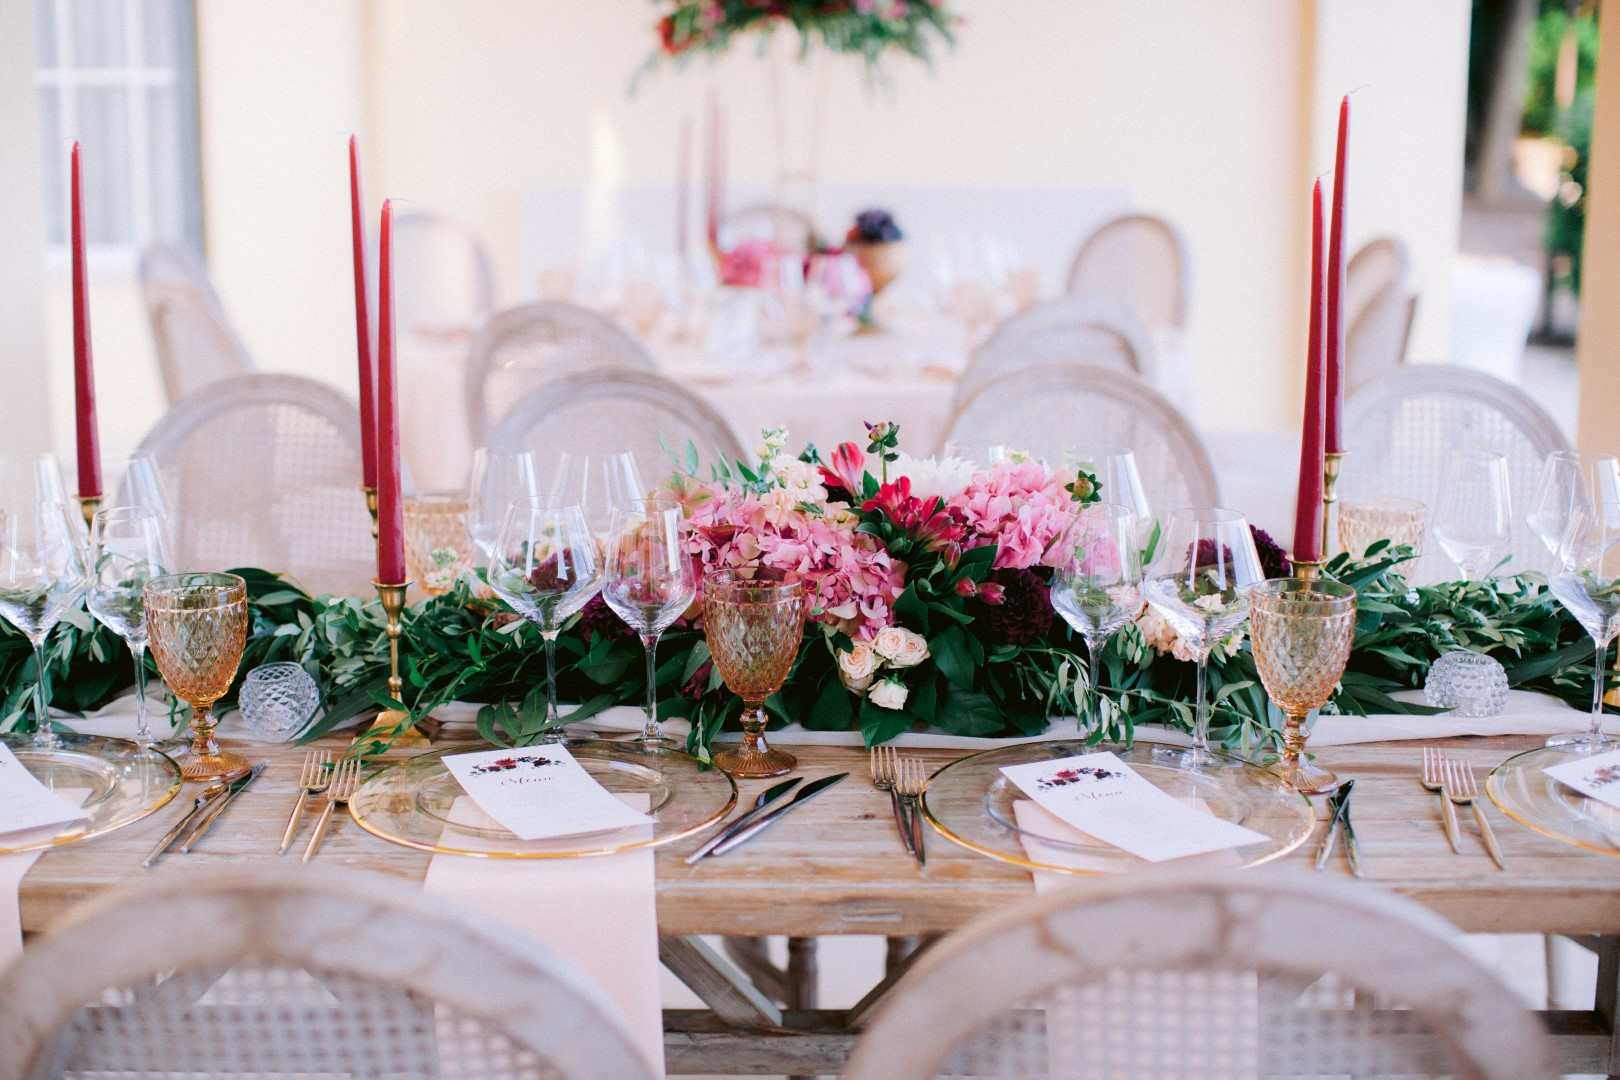 Split wedding Villa Dalmacija by Jona Christina photography. The flower arrangement is mainly pink flowers and greenery. The are tall dark pink candles and golden cups and cutlery.